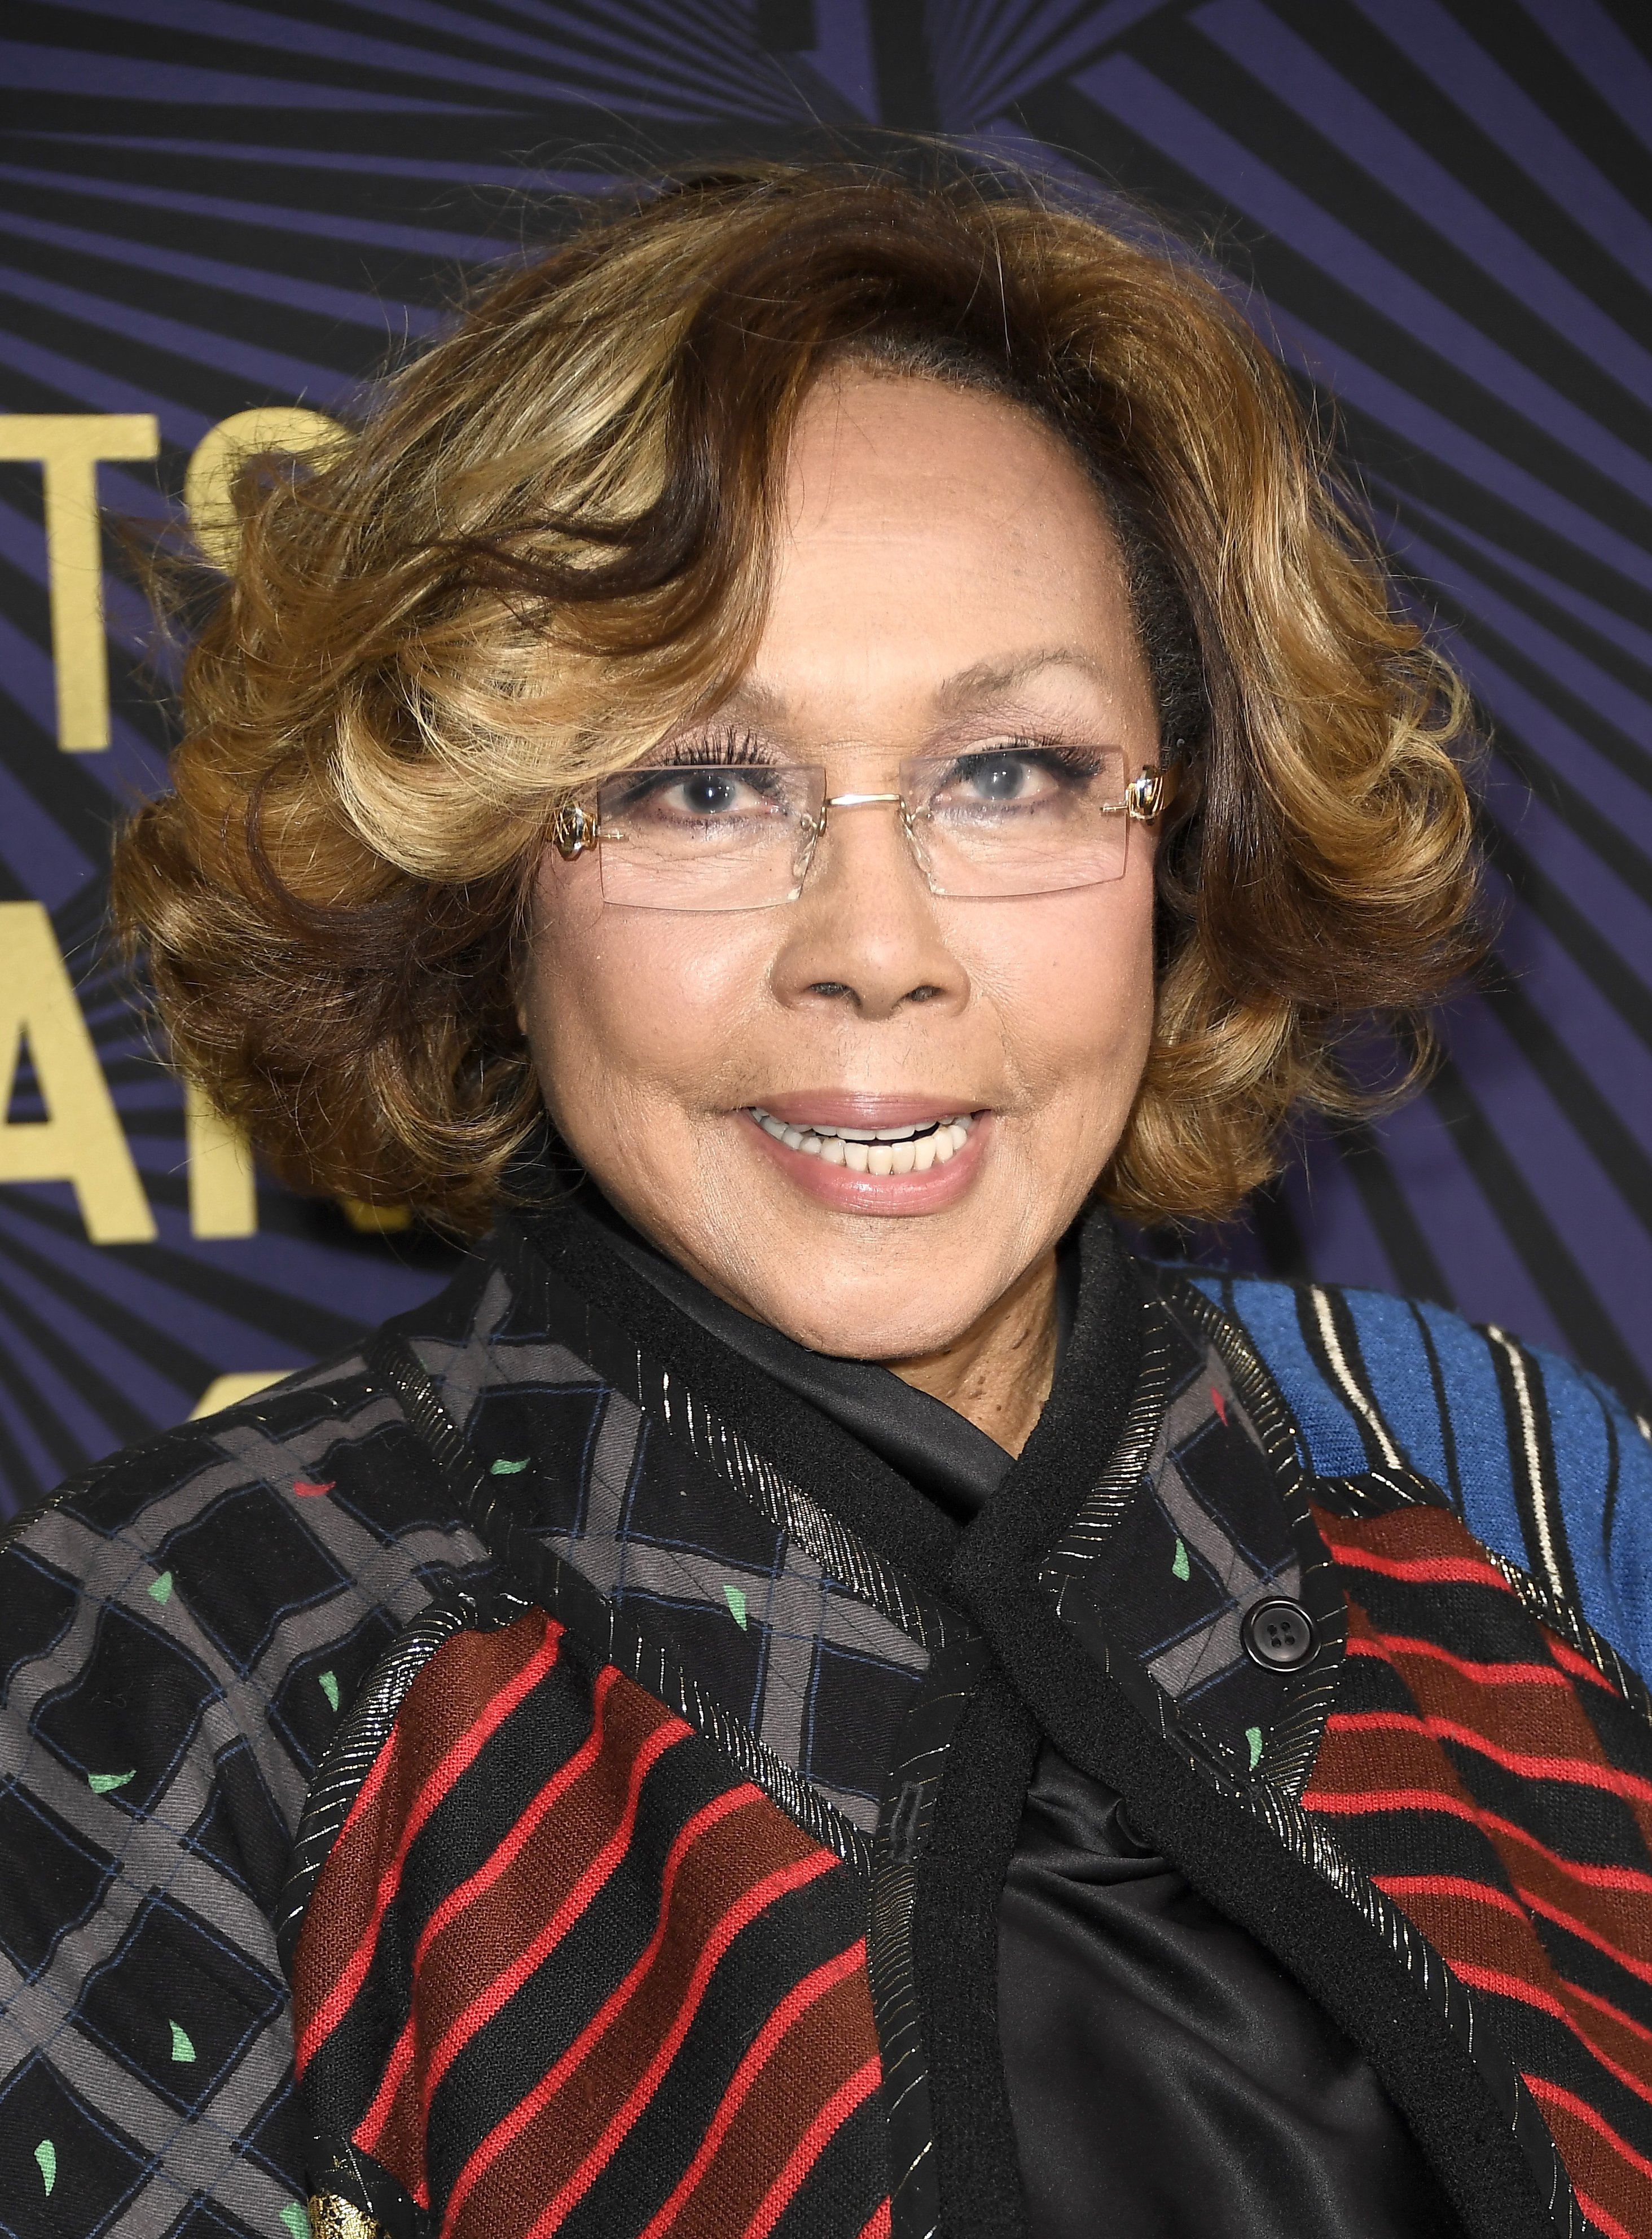 Diahann Carroll at the American Black Film Festival Honors on Feb. 17, 2017 in California | Photo: Getty Images